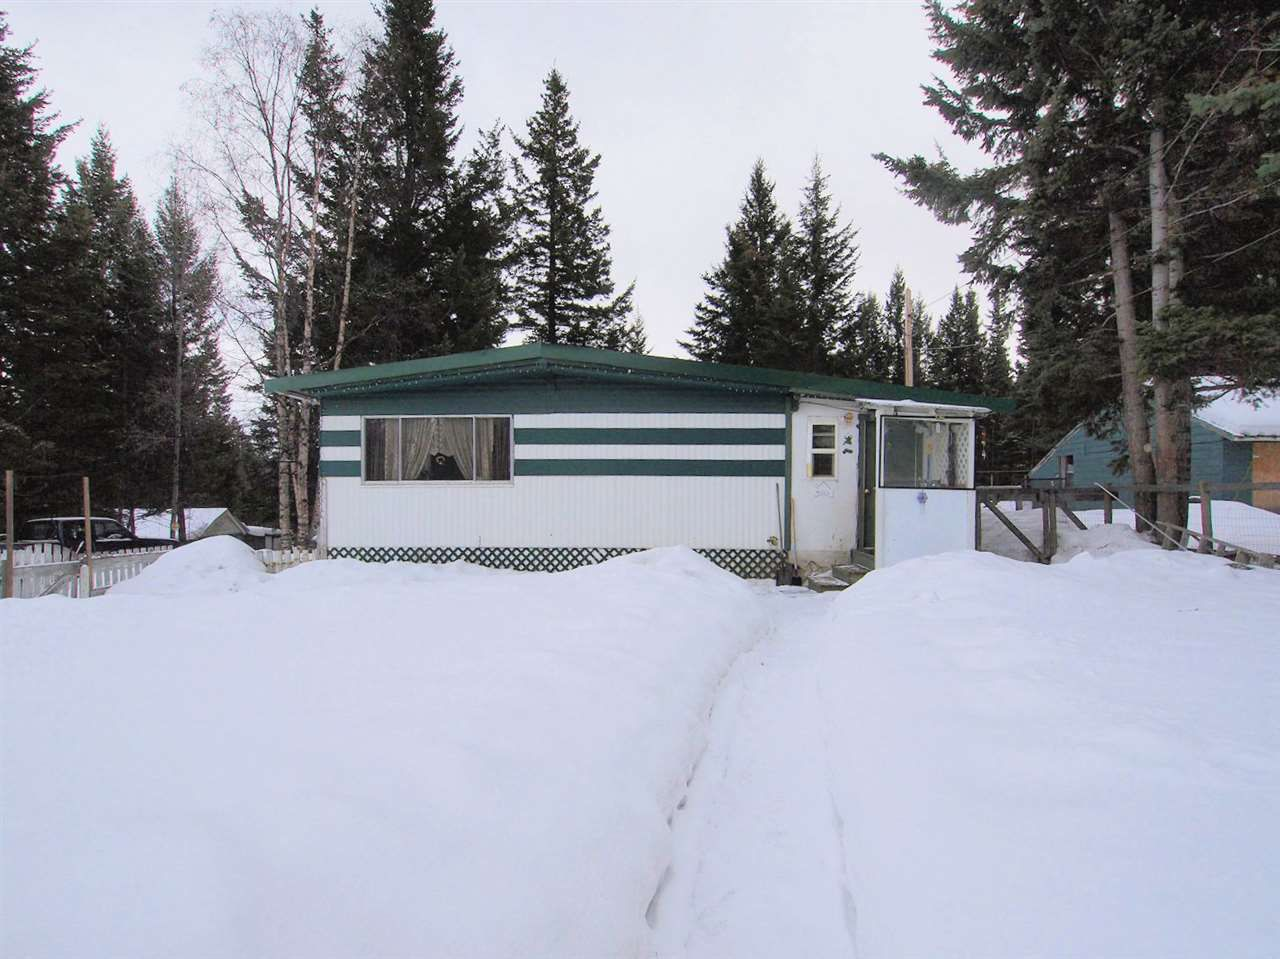 Main Photo: 6559 HYRA Road in 100 Mile House: 100 Mile House - Rural Manufactured Home for sale (100 Mile House (Zone 10))  : MLS®# R2333680